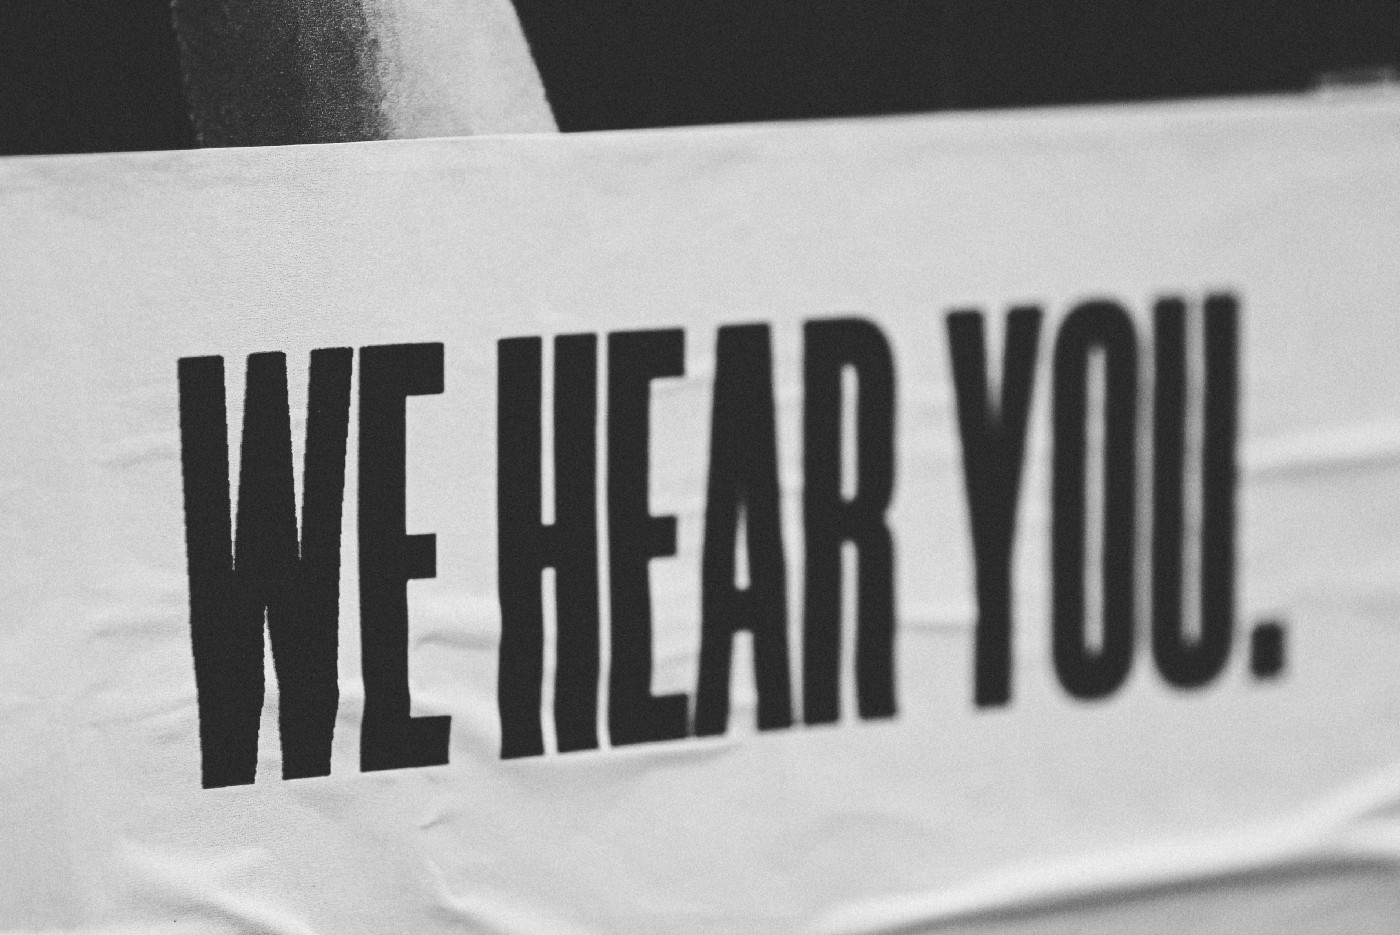 """A sign that reads: """"We hear you."""""""